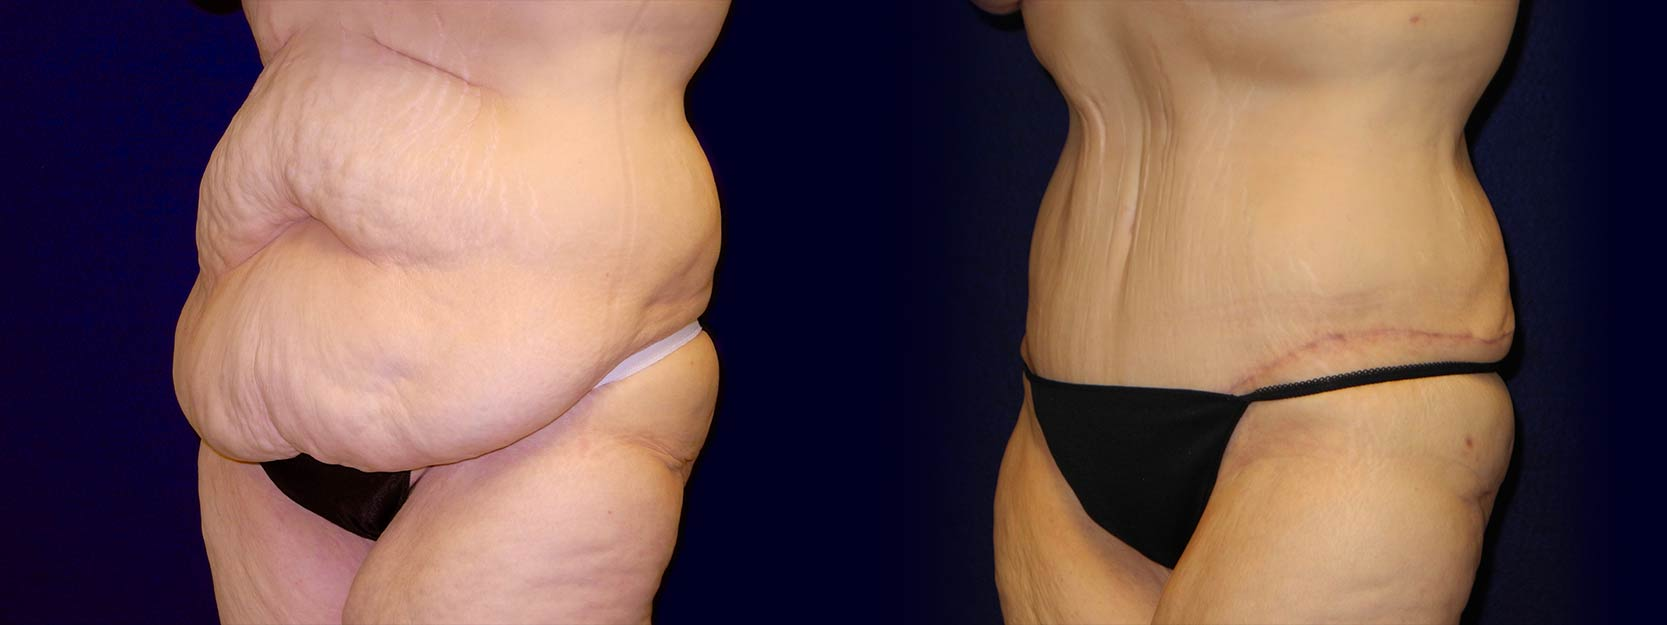 Left 3/4 View - Tummy Tuck After Weight Loss